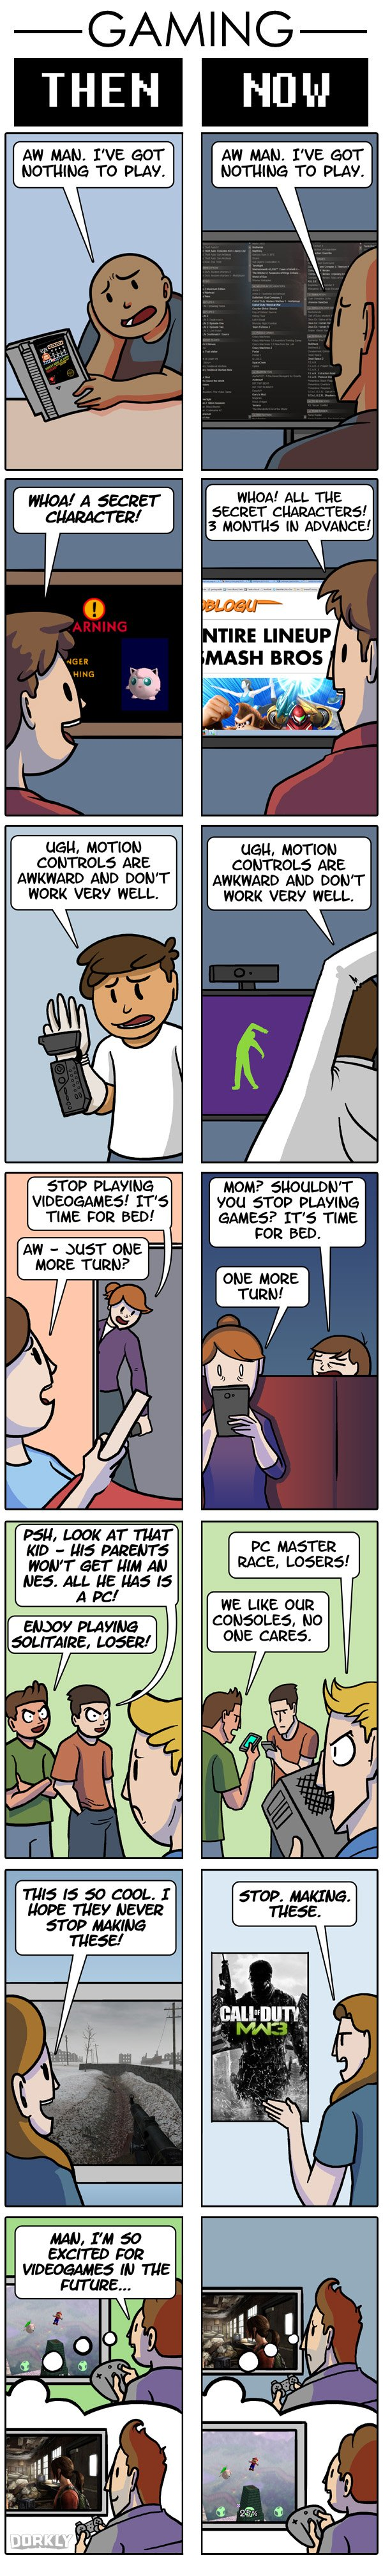 gaming-then-now-4